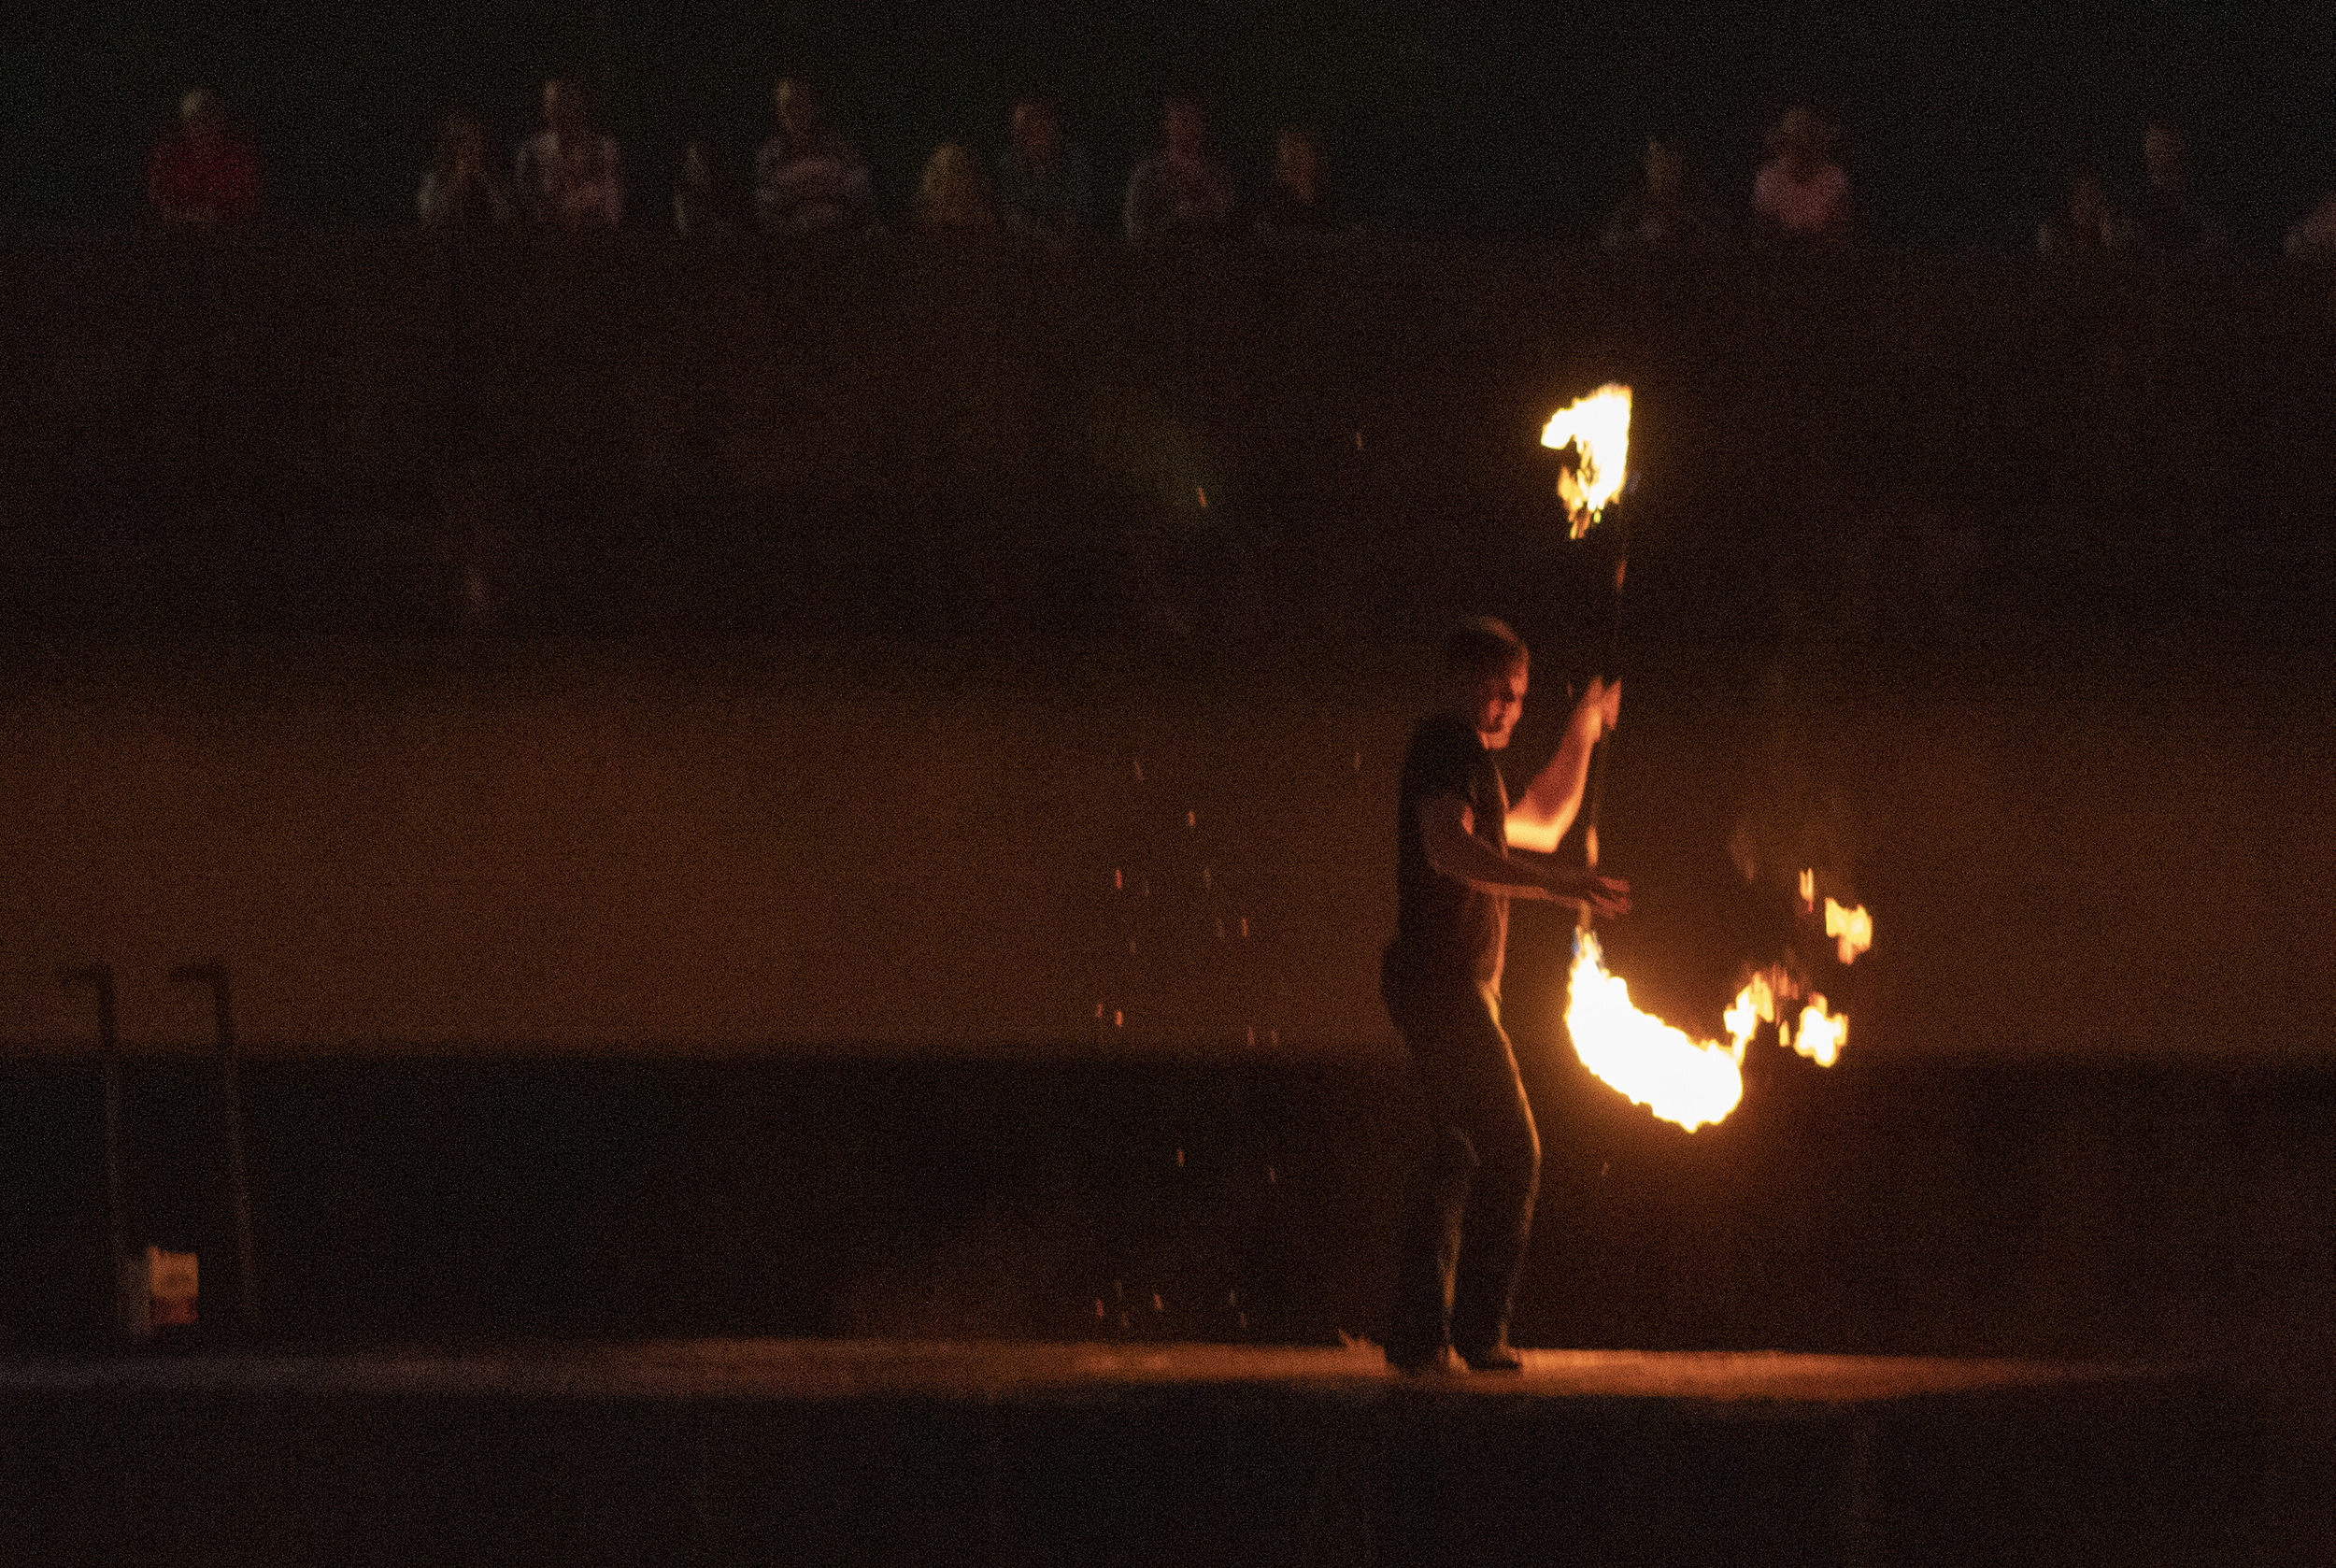 After the waterfires were lit, all attention was drawn to a performer and his flaming batons. Photo by Teagan Staudenmeier